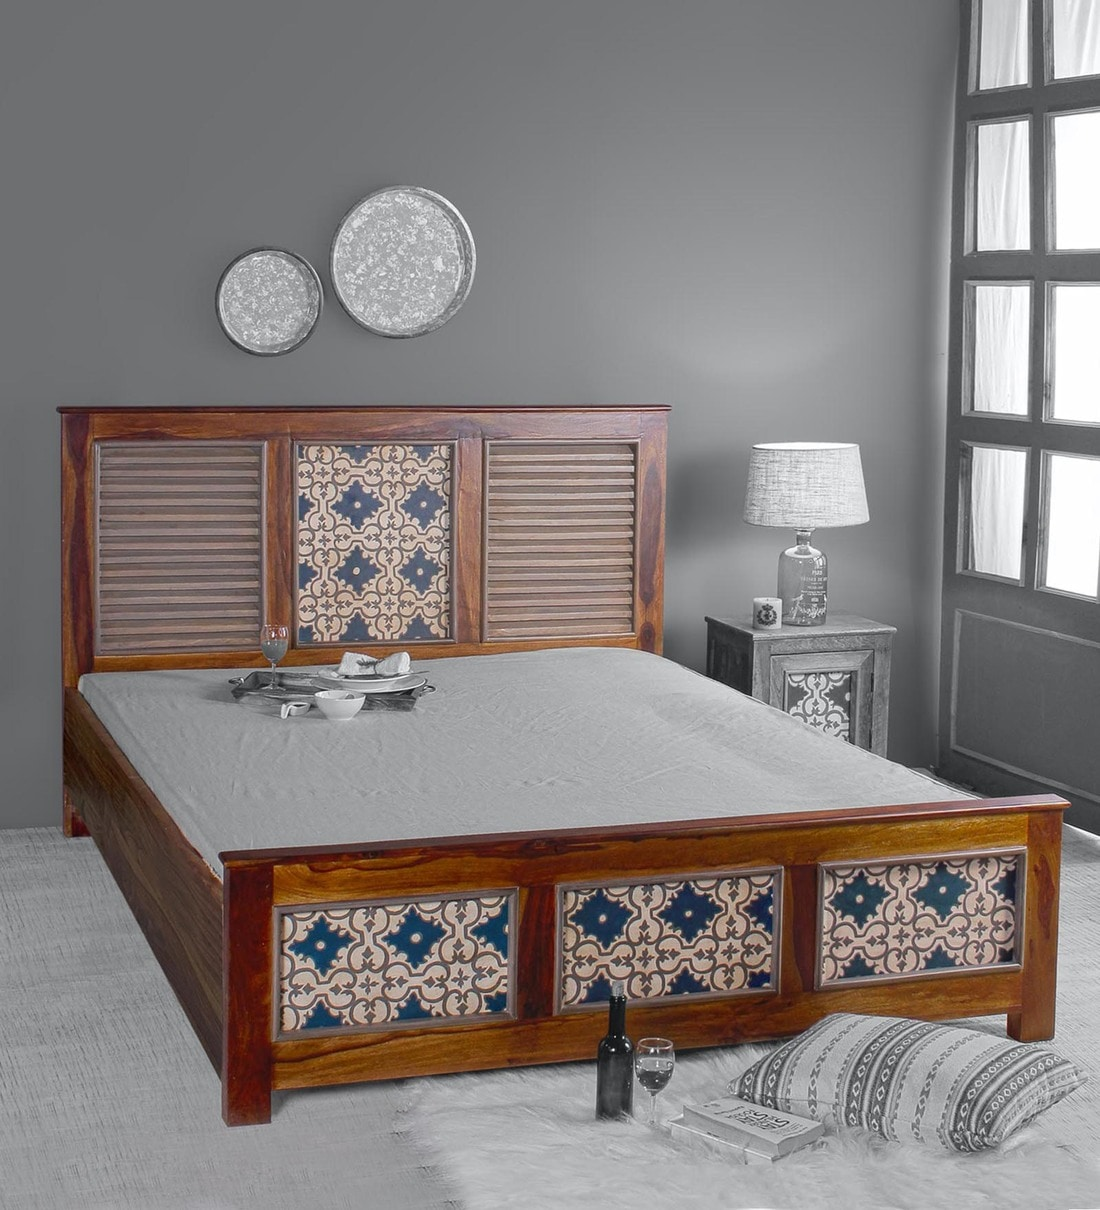 Buy Kolam Hand Painted Queen Size Bed With Storage In Teak Finish By Fabuliv Online Contemporary Queen Size Beds Beds Furniture Pepperfry Product